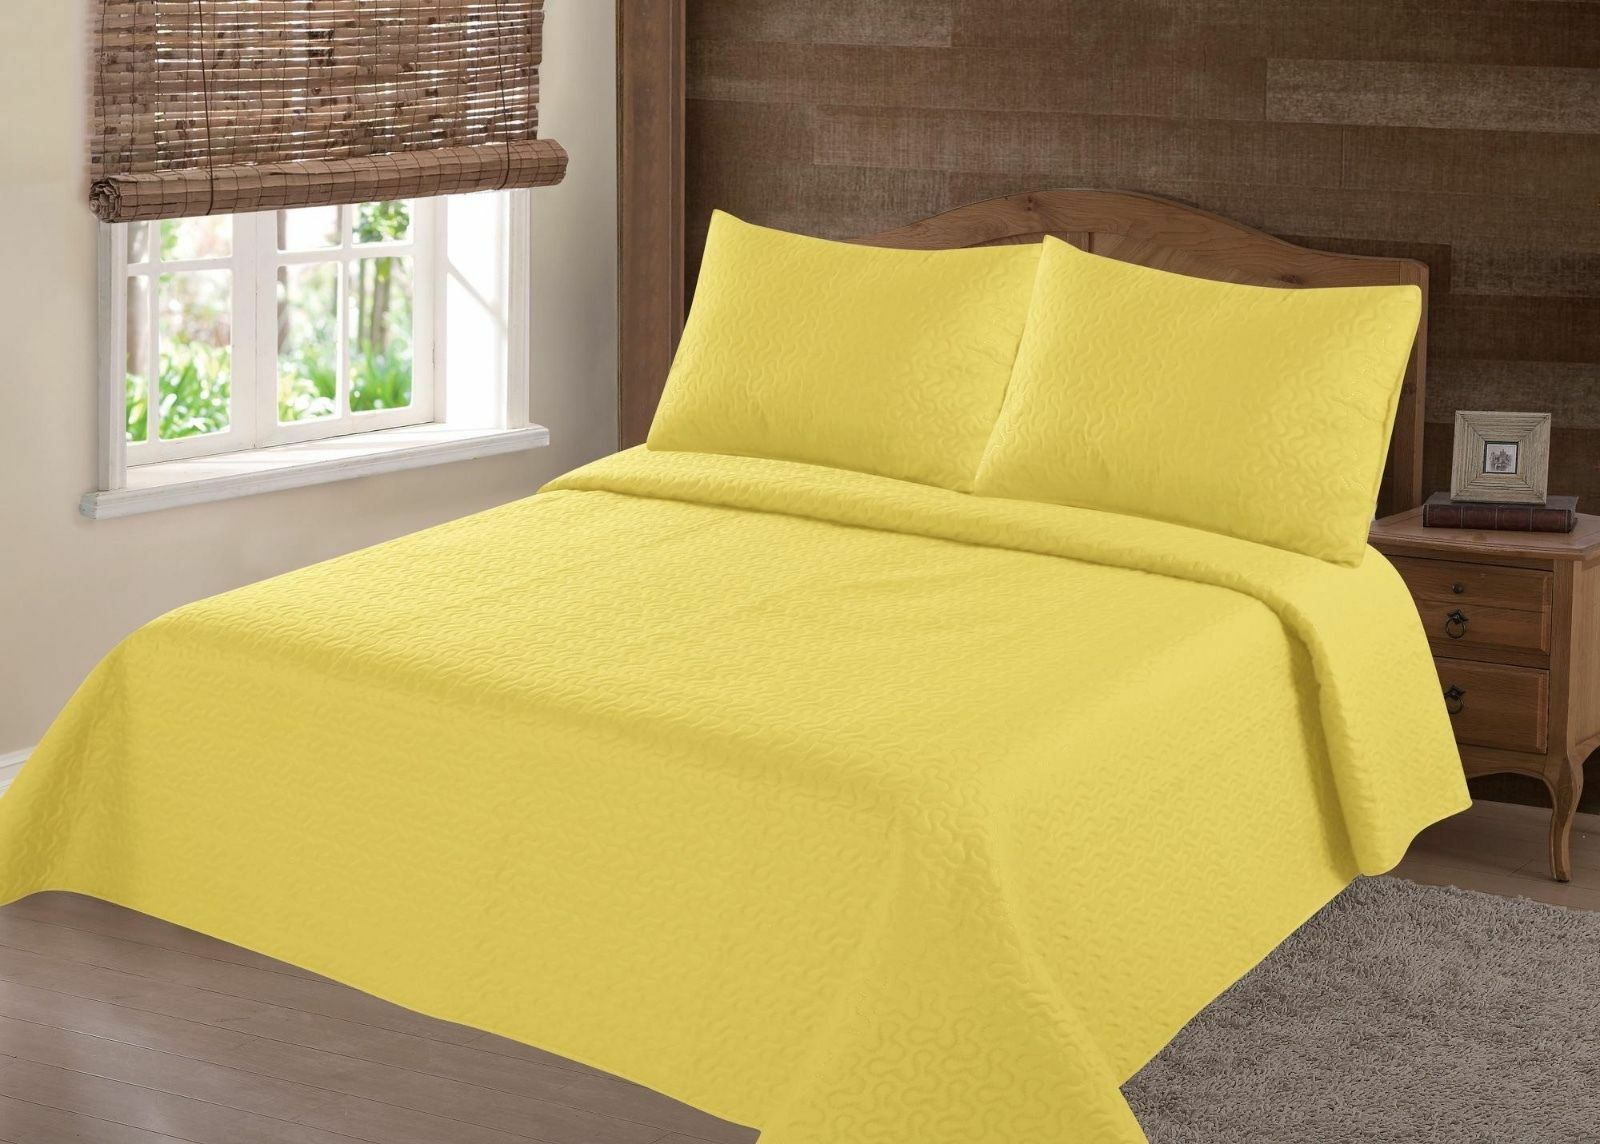 midwest yellow nena solid quilt bedding bedspread